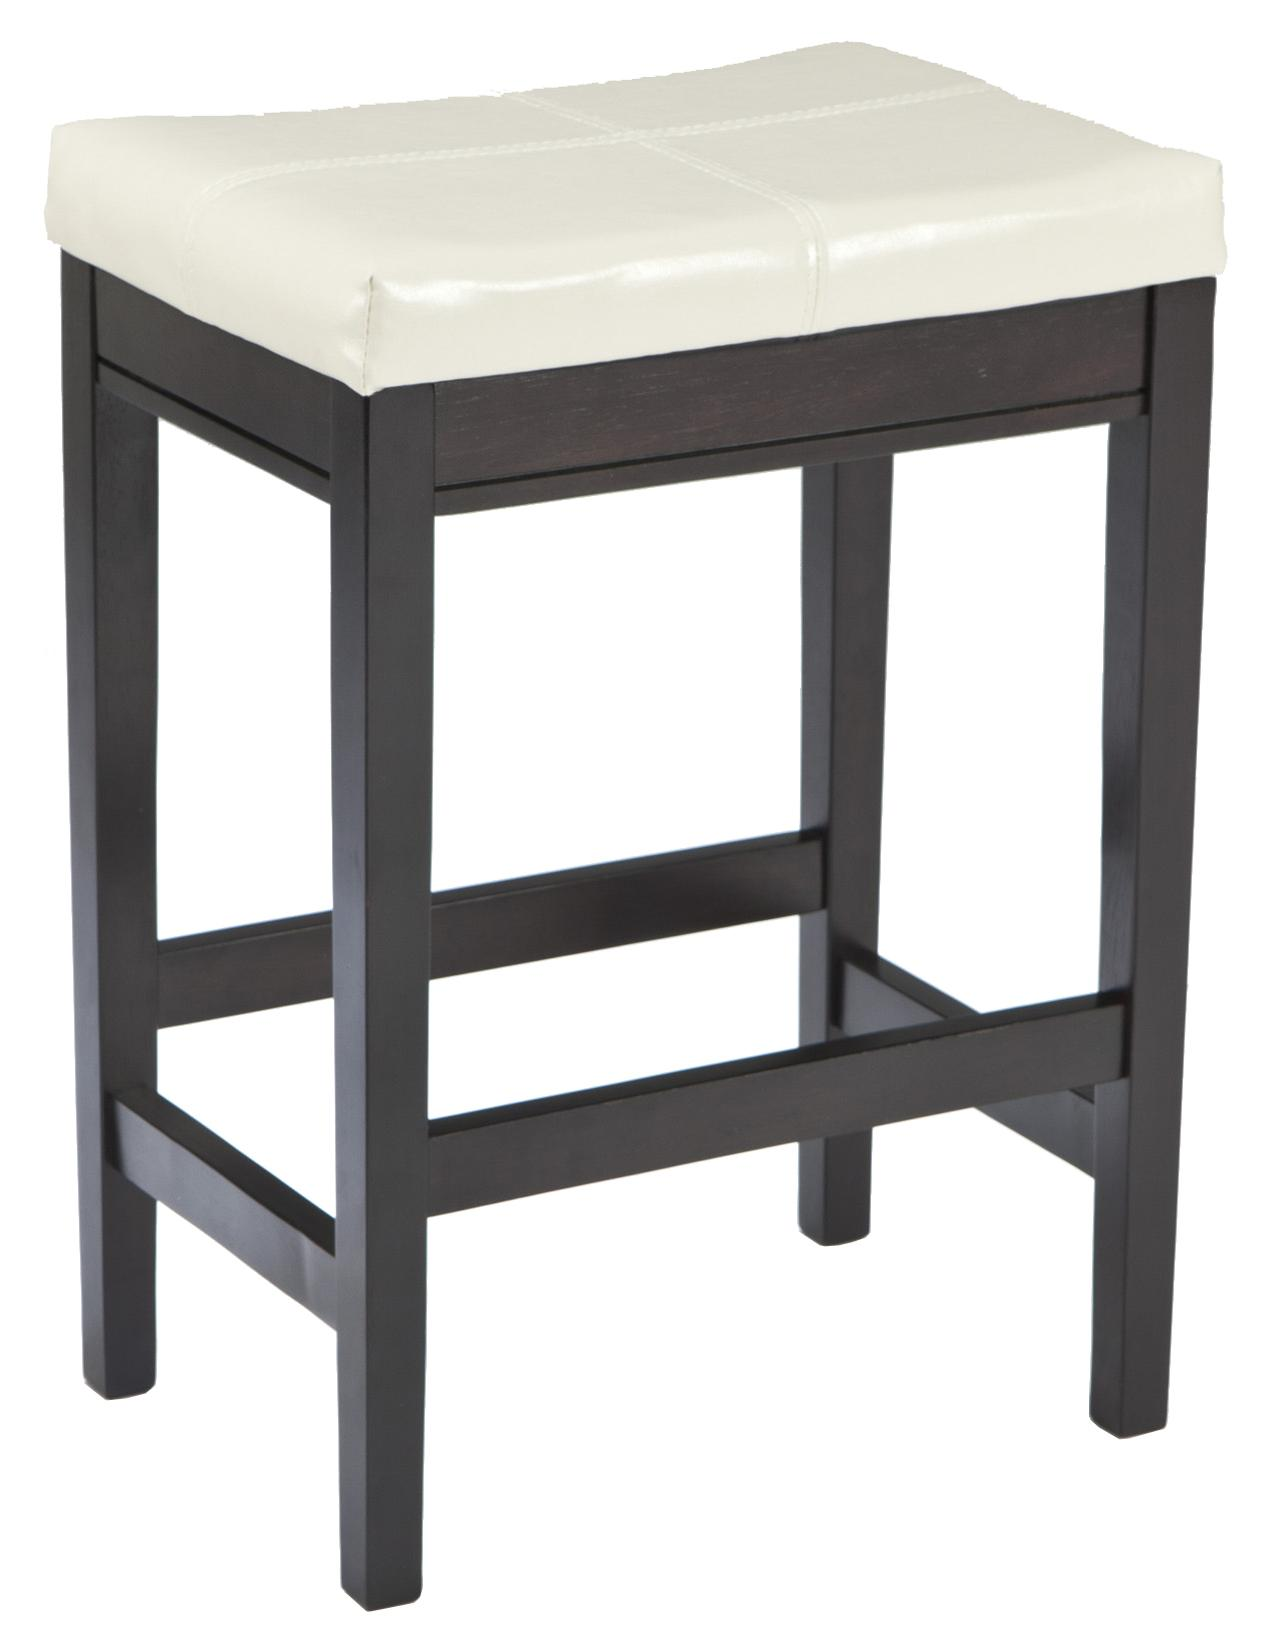 Signature Design by Ashley Kimonte Upholstered Barstool - Item Number: D250-124